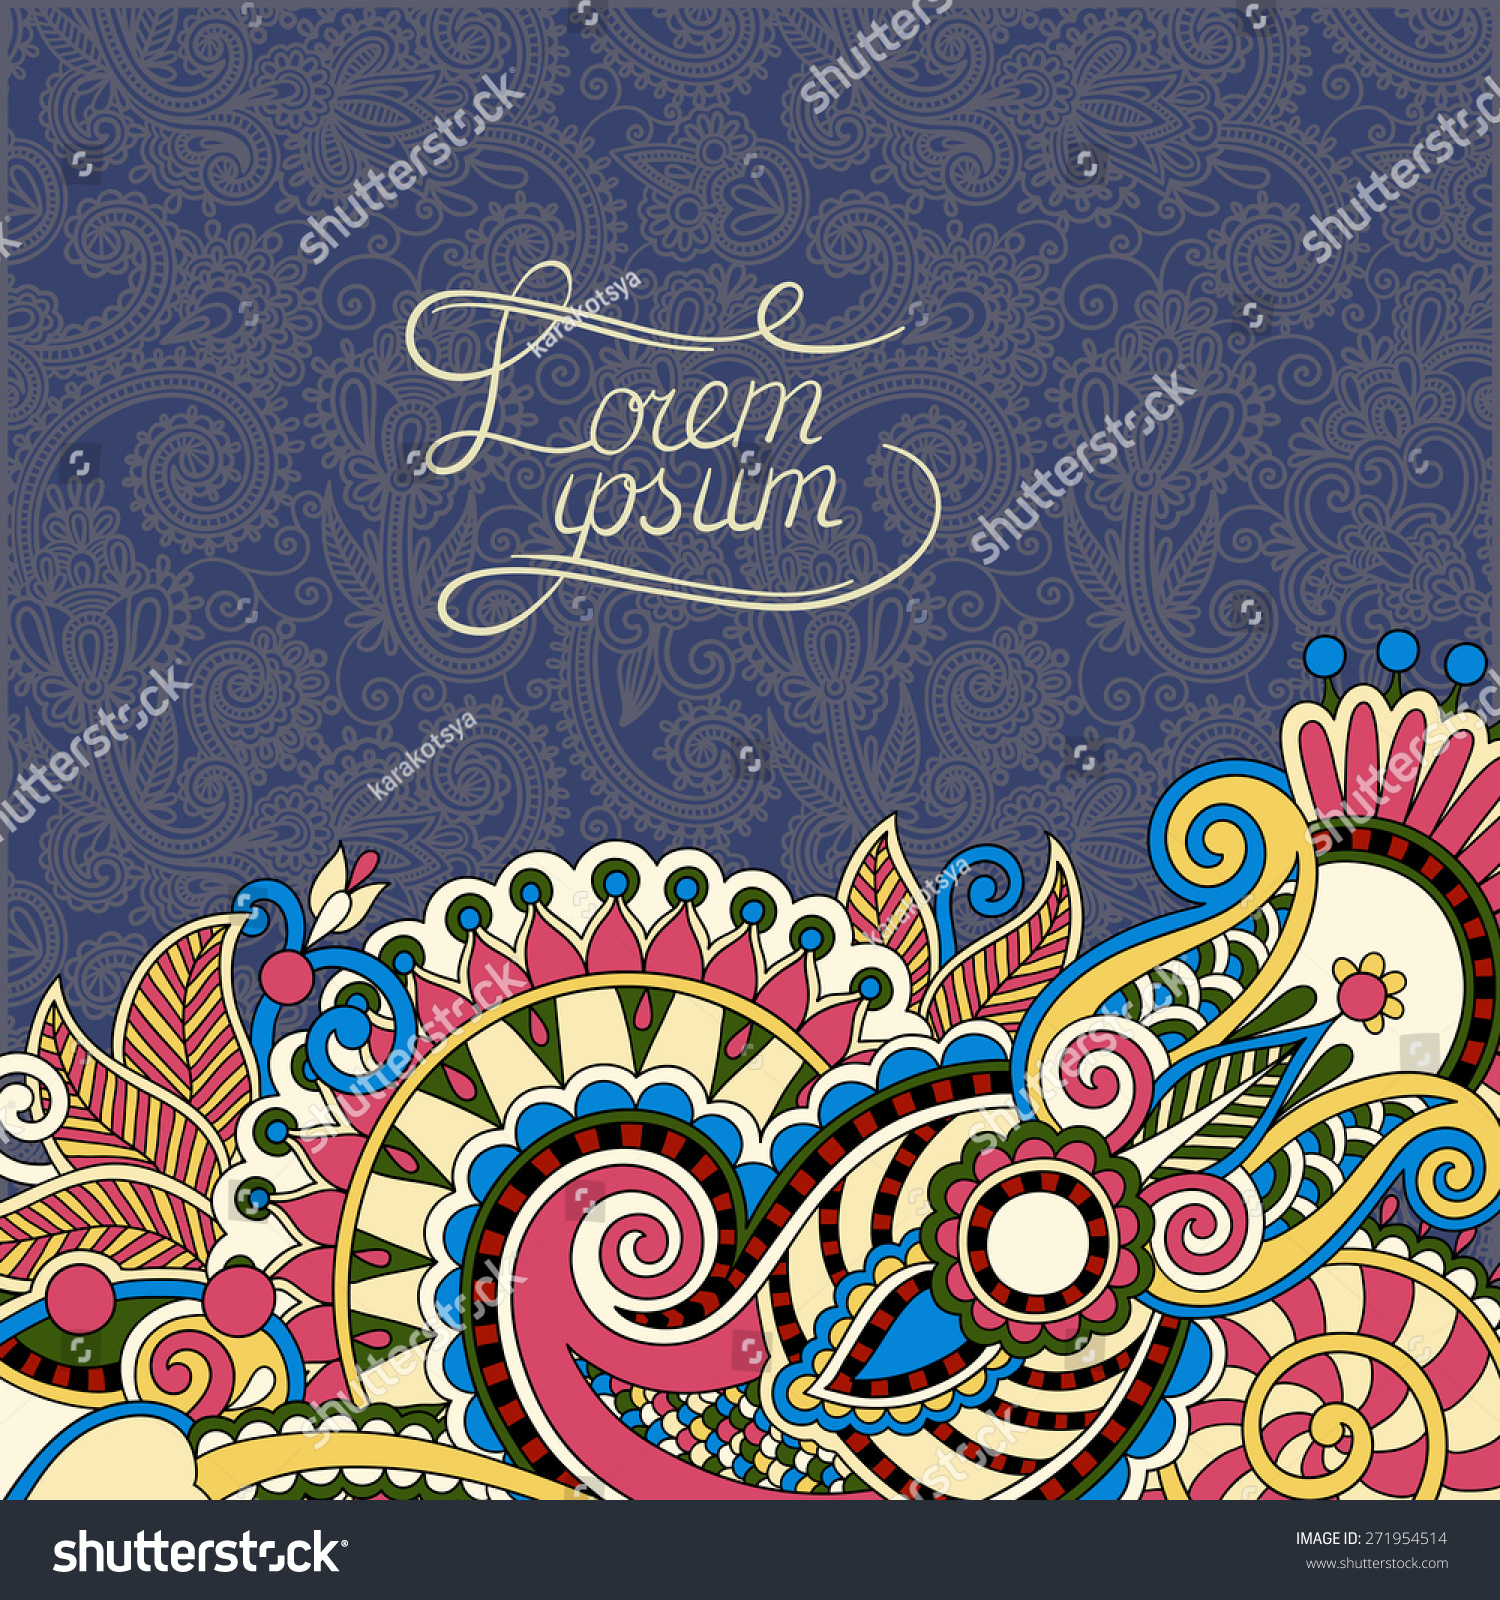 Cool Book Cover Vector : Paisley design on decorative floral background stock